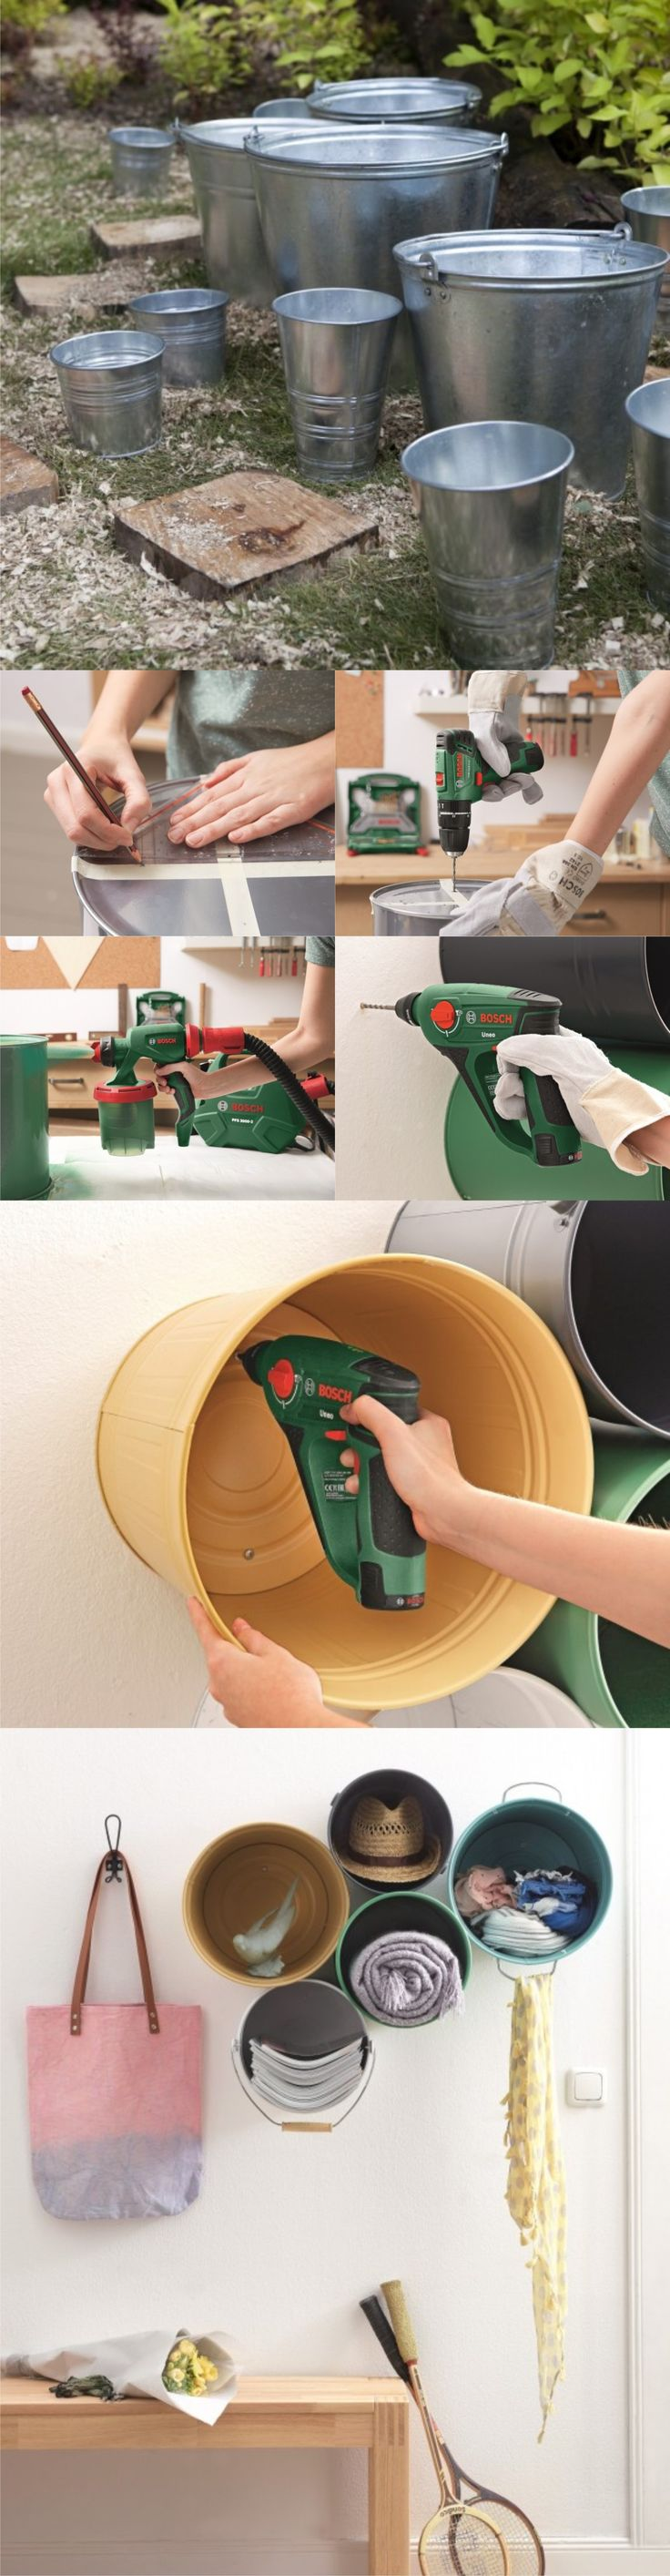 Buckets into storage - great idea for utility and boot rooms. Make sure they are positioned safely and are not extending into space where they might be a hazard.